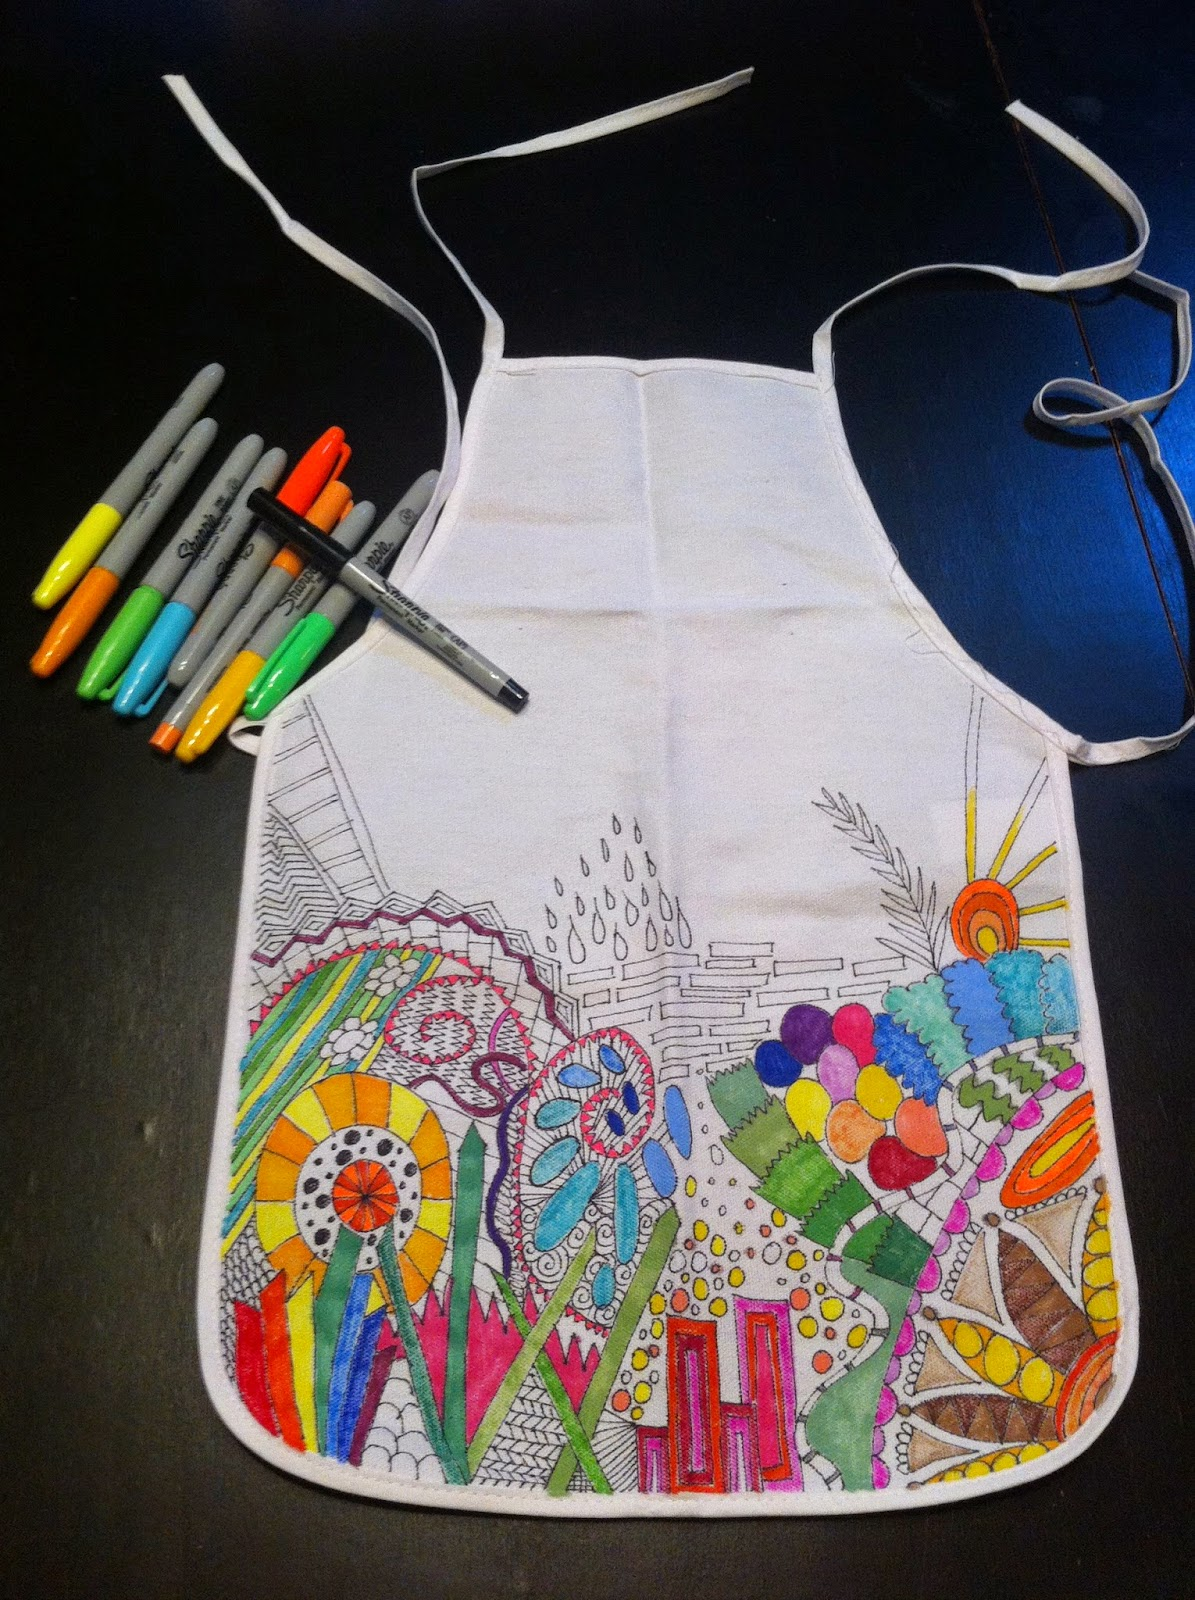 Aprons are also great for messy arts and crafts, especially for kids. Customize a grilling apron for him to make outdoor cooking and grilling more fun, or an embroidered apron for her with her name or monogram. You can even find matching couples aprons, photo aprons and fun designs just for kids.